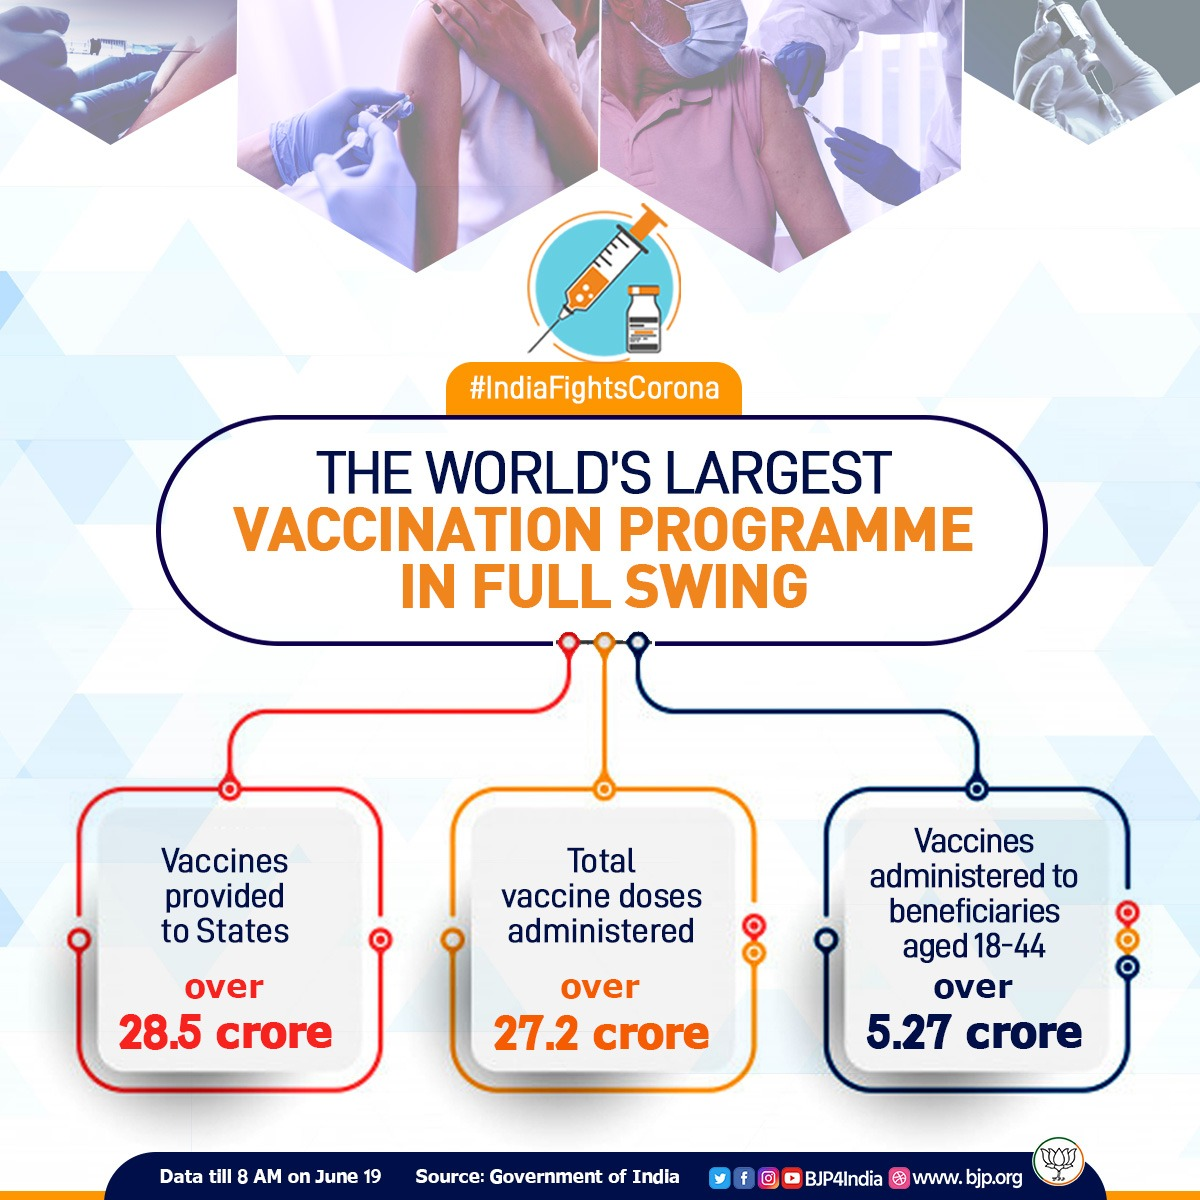 The world's largest vaccination programme is going on in full swing in India.  💉Over 28.5 crore vaccines provided to states.  💉Over 27.2 crore vaccine does have been administered so far.  #IndiaFightsCorona https://t.co/4D0WTryF5L